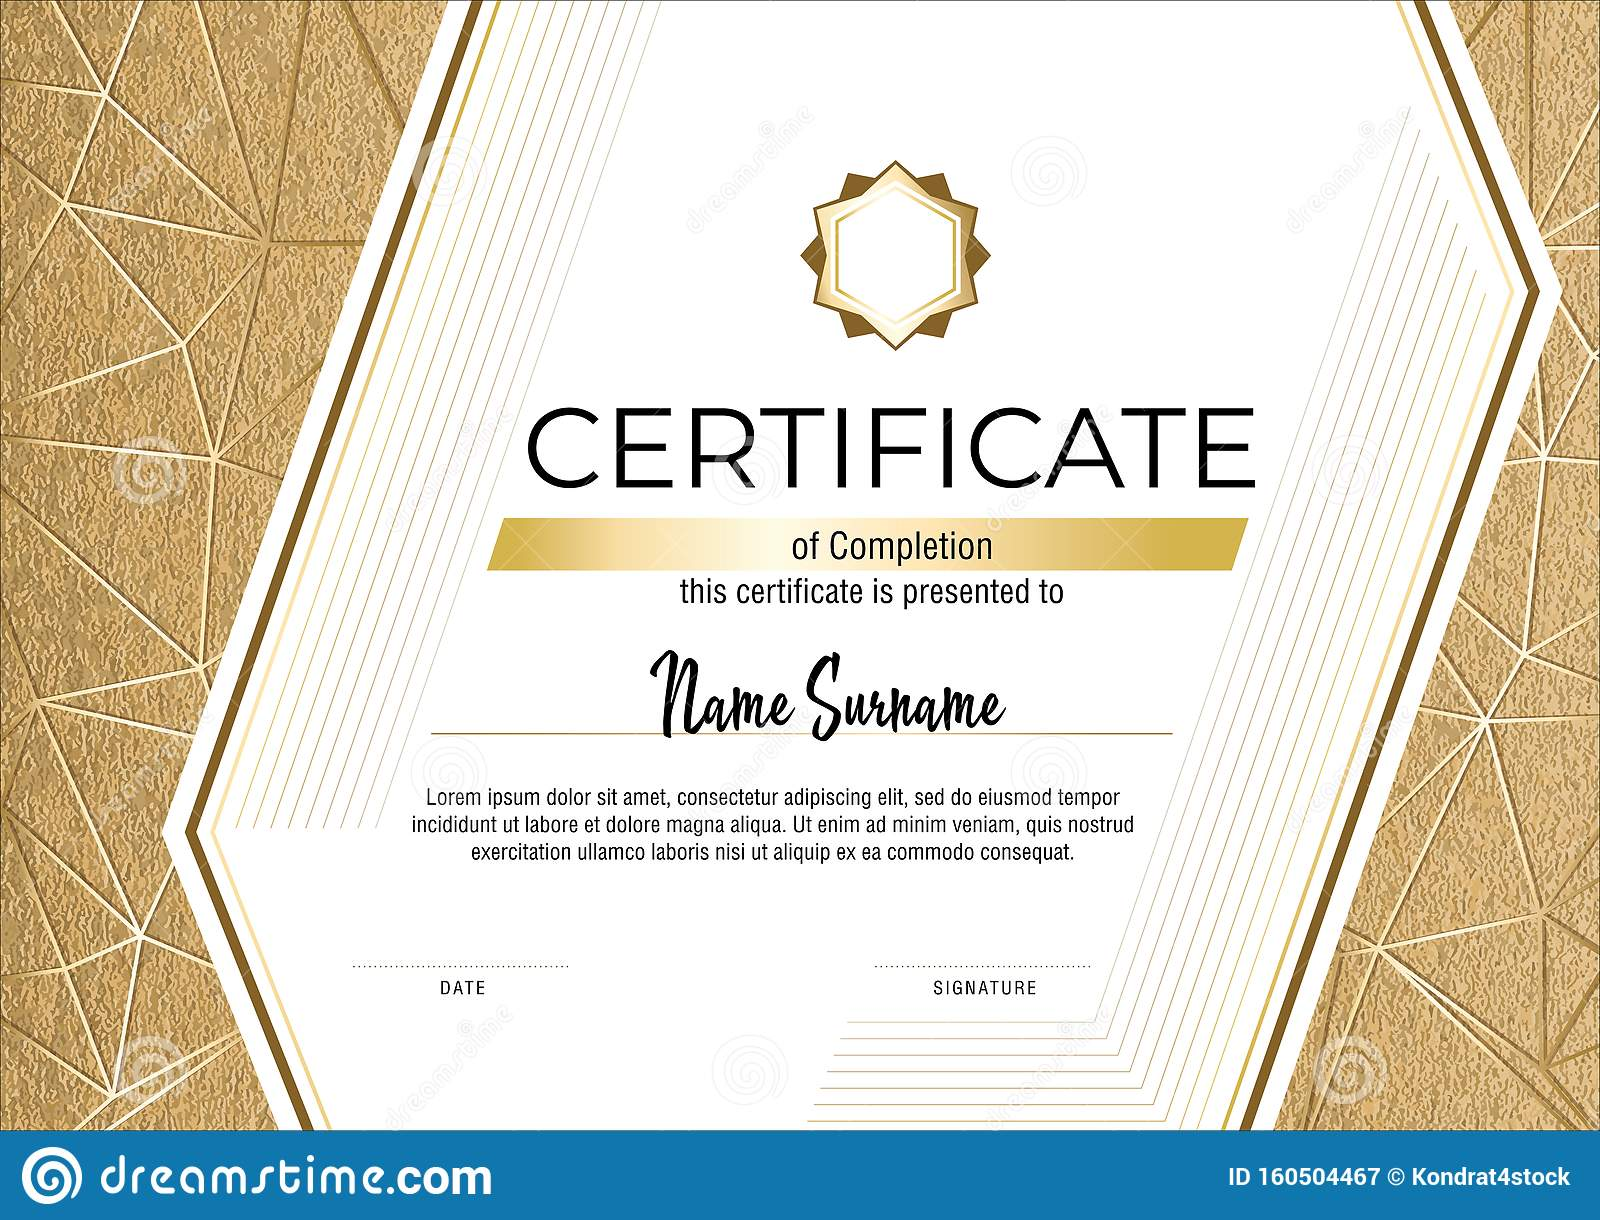 24 Certificate Lines Photos - Free & Royalty-Free Stock Photos Inside Crossing The Line Certificate Template